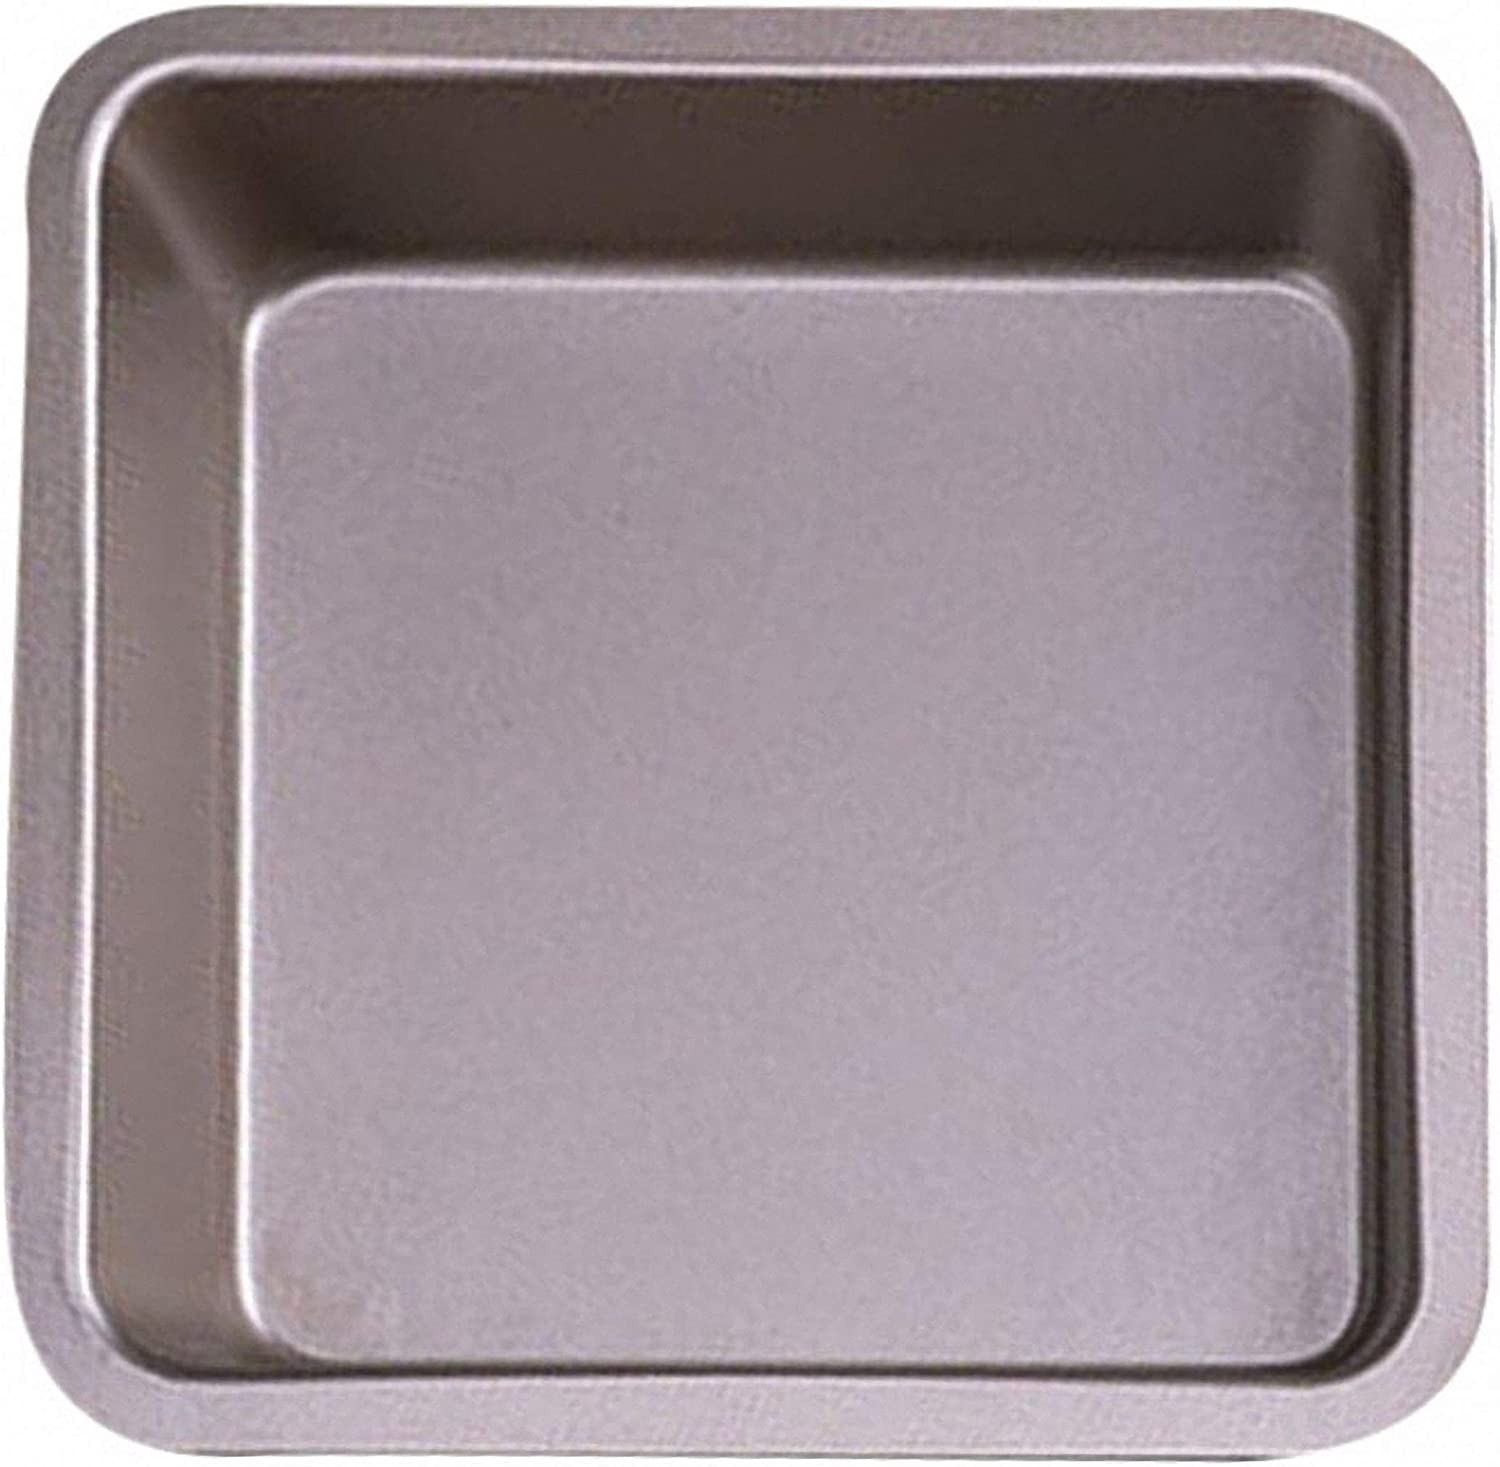 Amazon Com Cheap Store 8 Inch Square Steel Cake Loaf Baking Pan Tray Non Stick Baking Tray Kitchen Supplies Bakeware Tool 2 Compact Ovenware Baking Sheet Baking Sheet Pans Nonstick Gold Kitchen